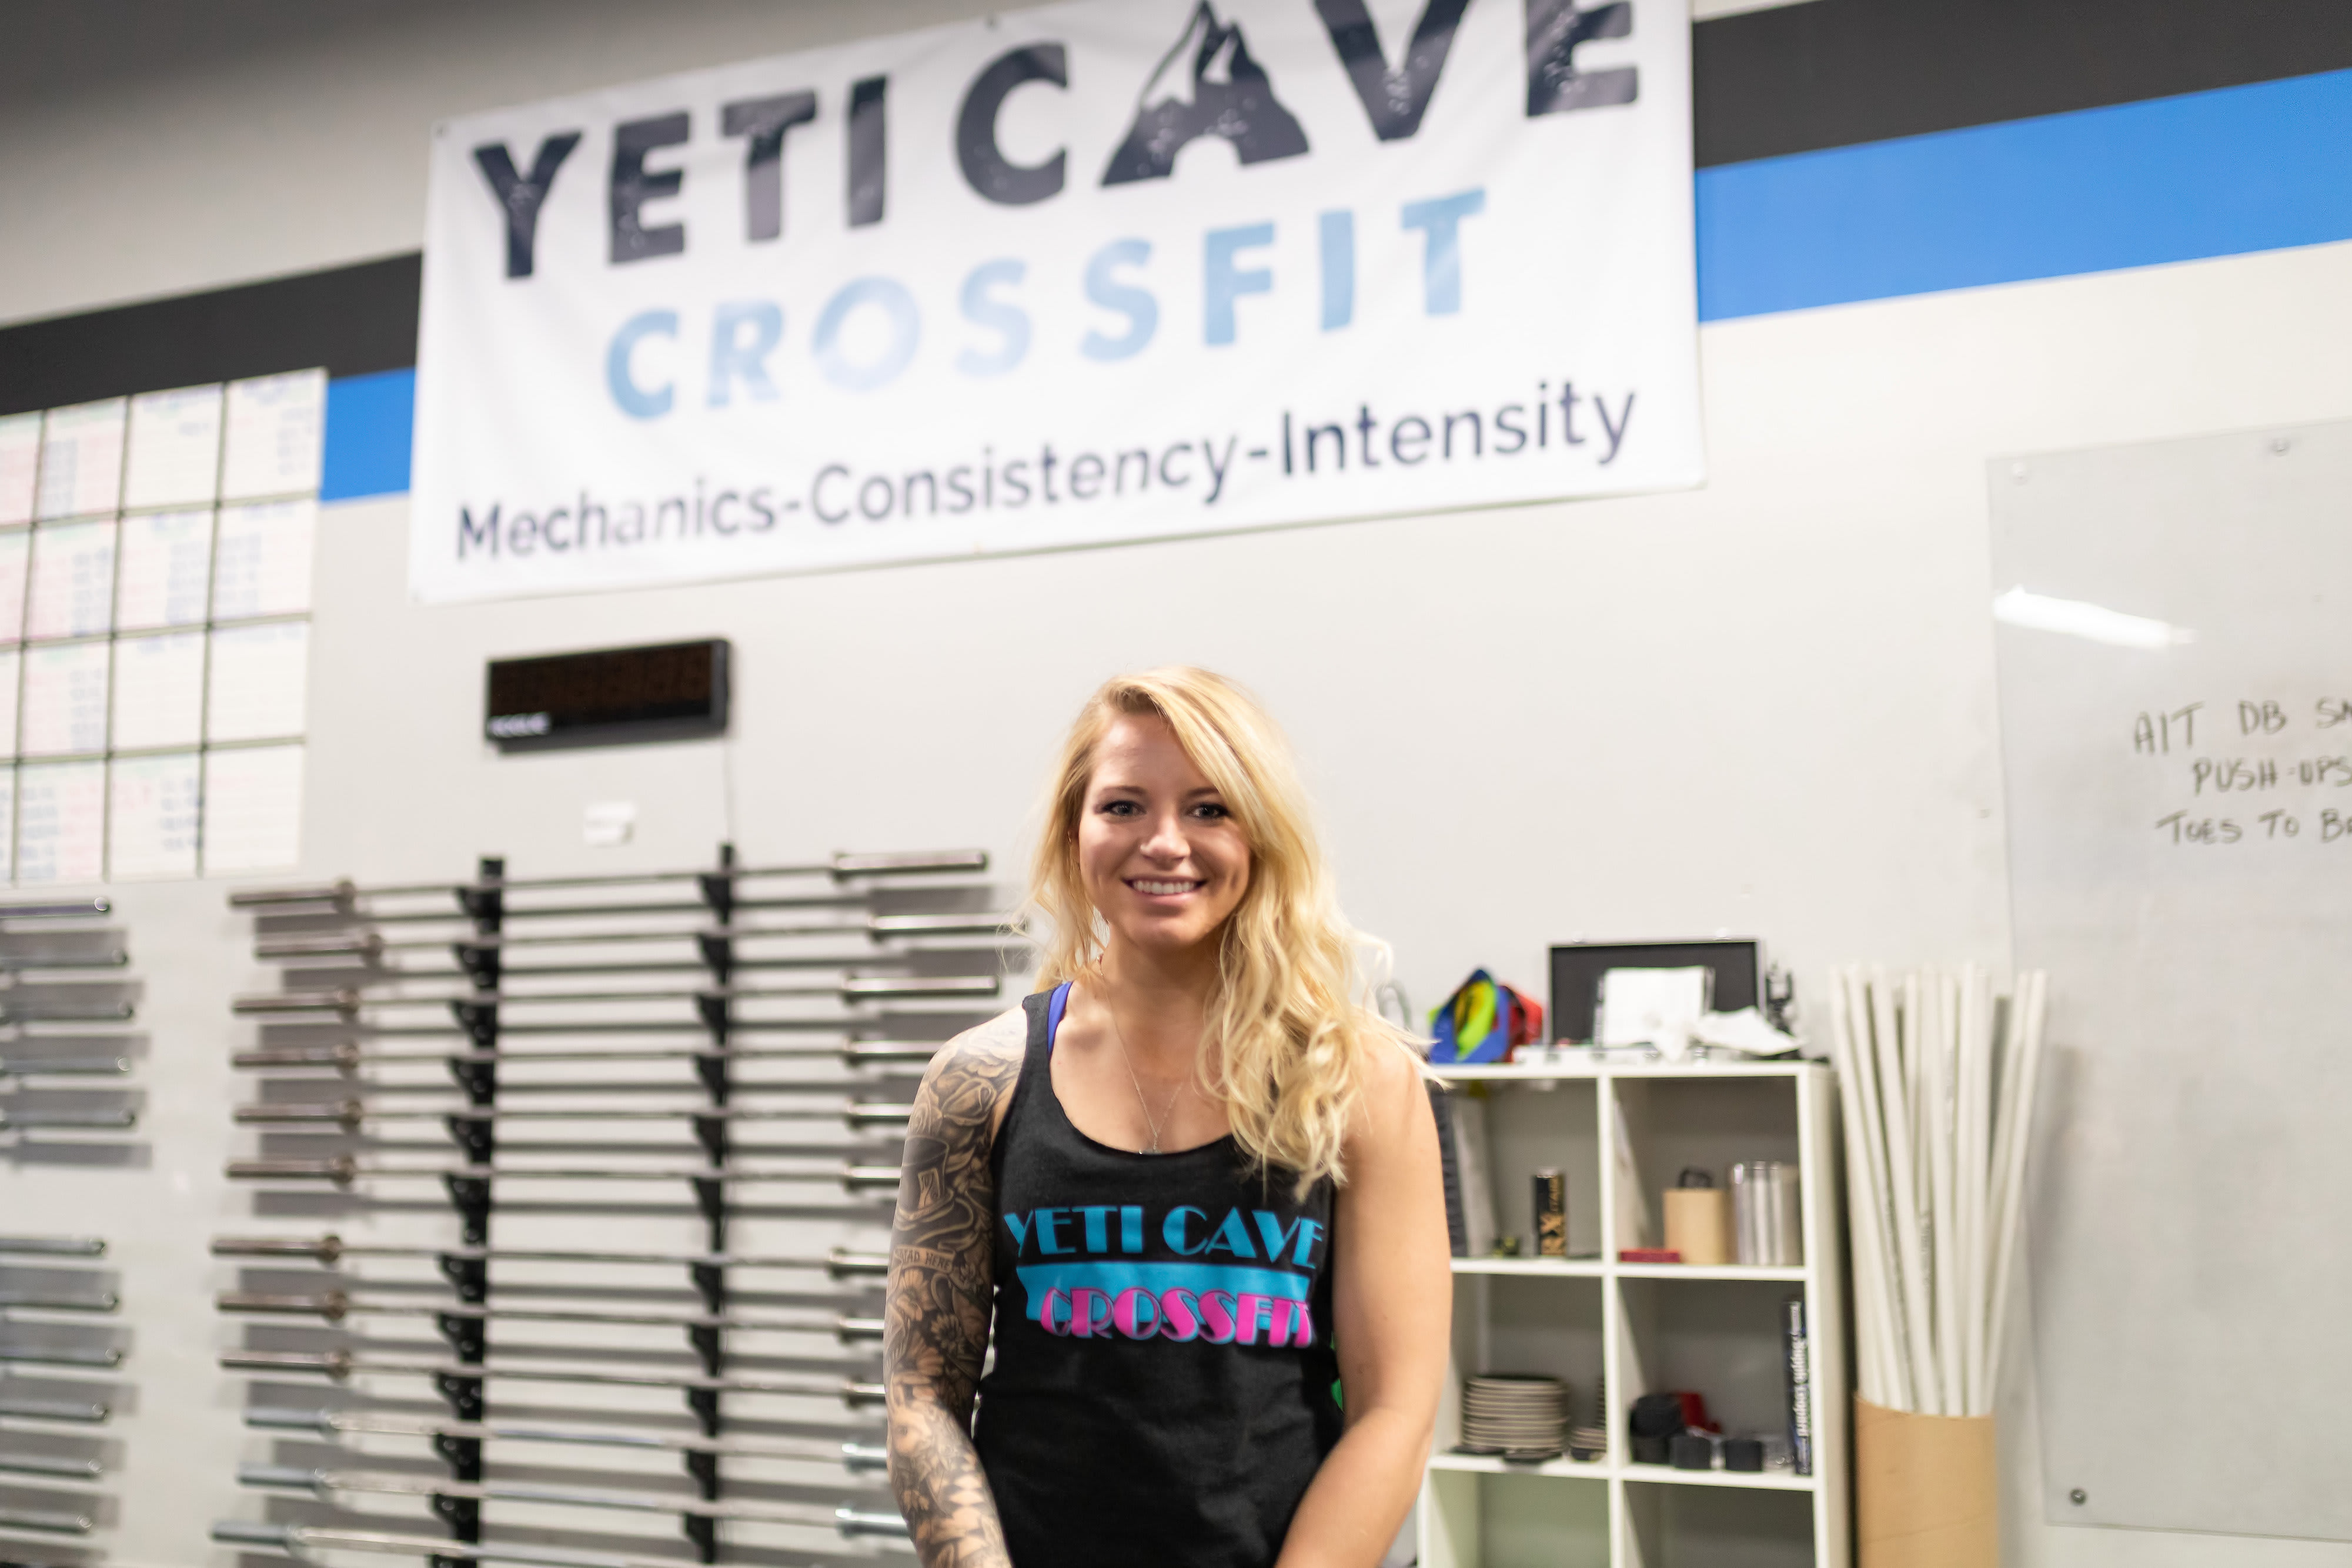 Britt Page in Fort Collins - Yeti Cave CrossFit